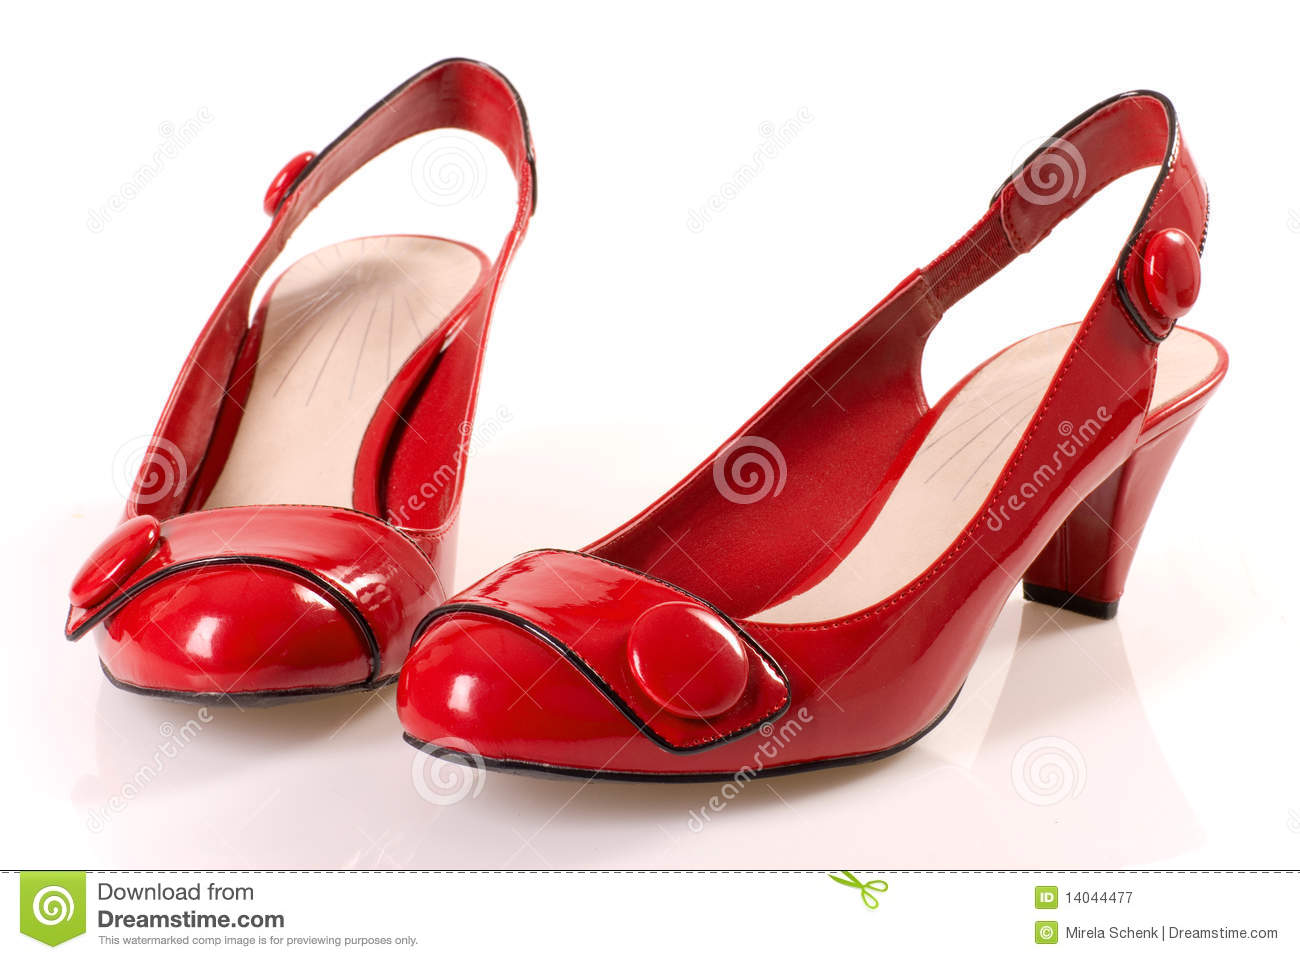 Women red shoes Shoes for men online